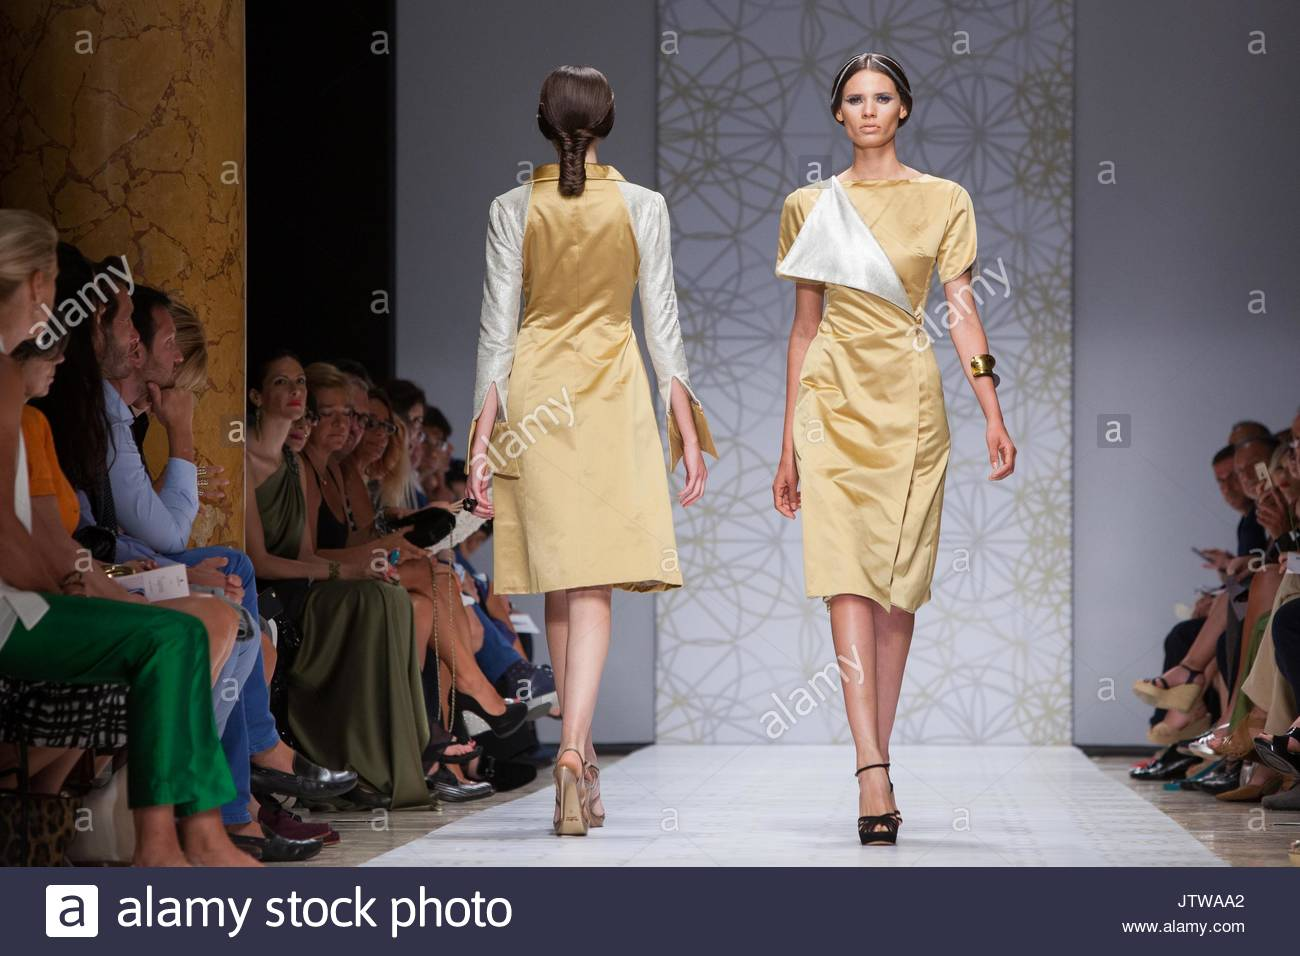 7a5eab9df5 Models present creations from the Fall/Winter 2015-2016 collection by  Sabrina Persechino during the AltaRoma fashion week on July 12, 2015 in Rome,  Italy.